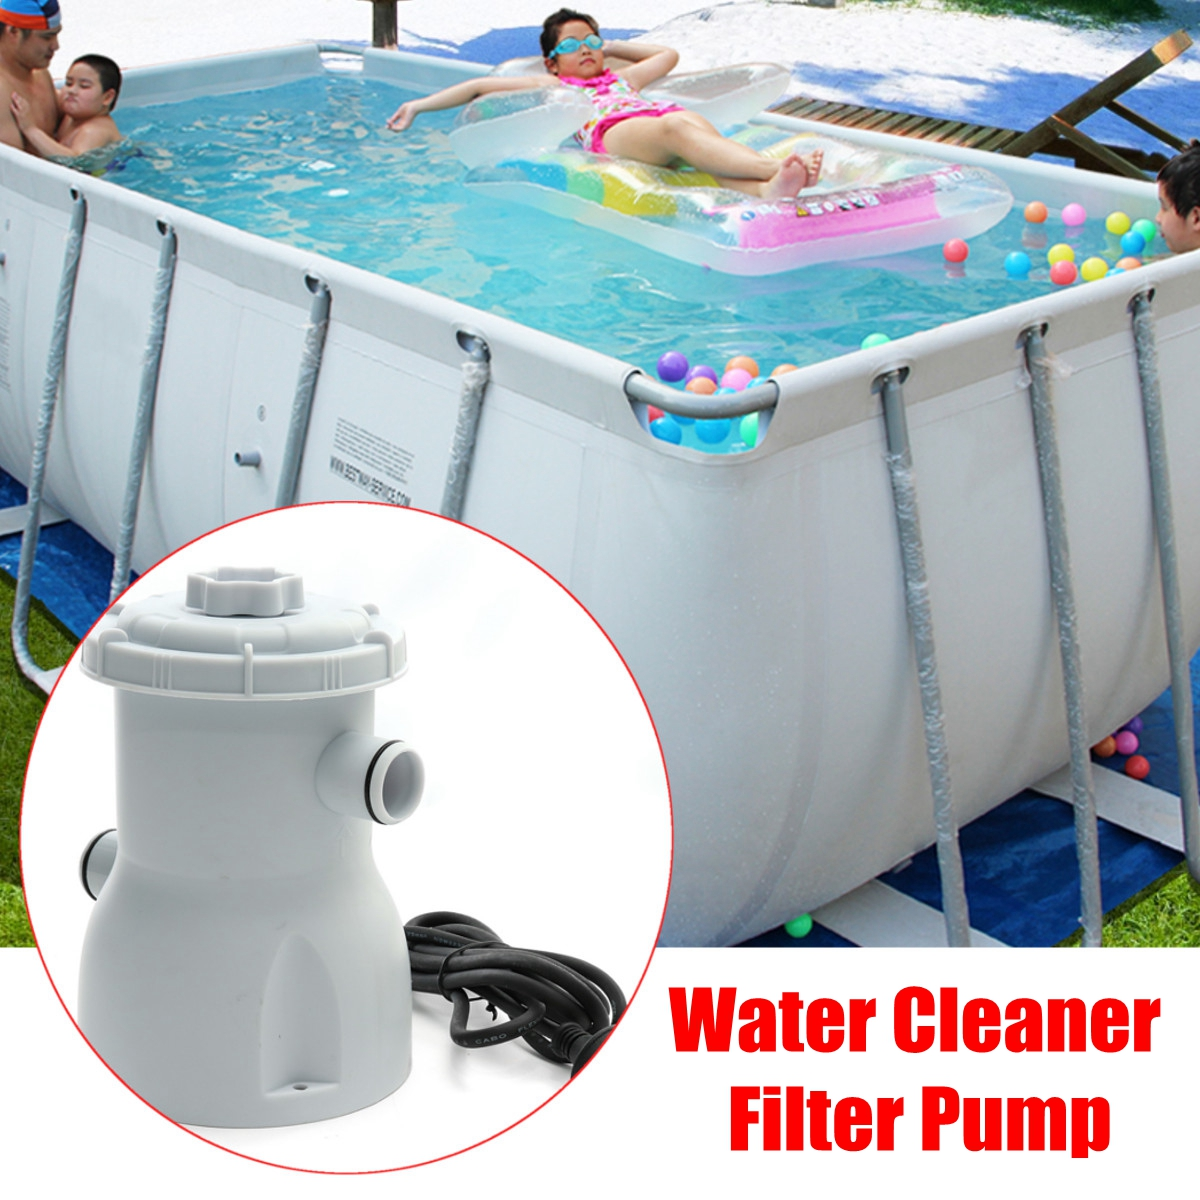 US $26.18 52% OFF|220V Electric Filter Pump Swimming Pool Filter Pump Water  Clean Clear Dirty Pool Pond Pumps Filter/swimming Pool Water Cleaner-in ...